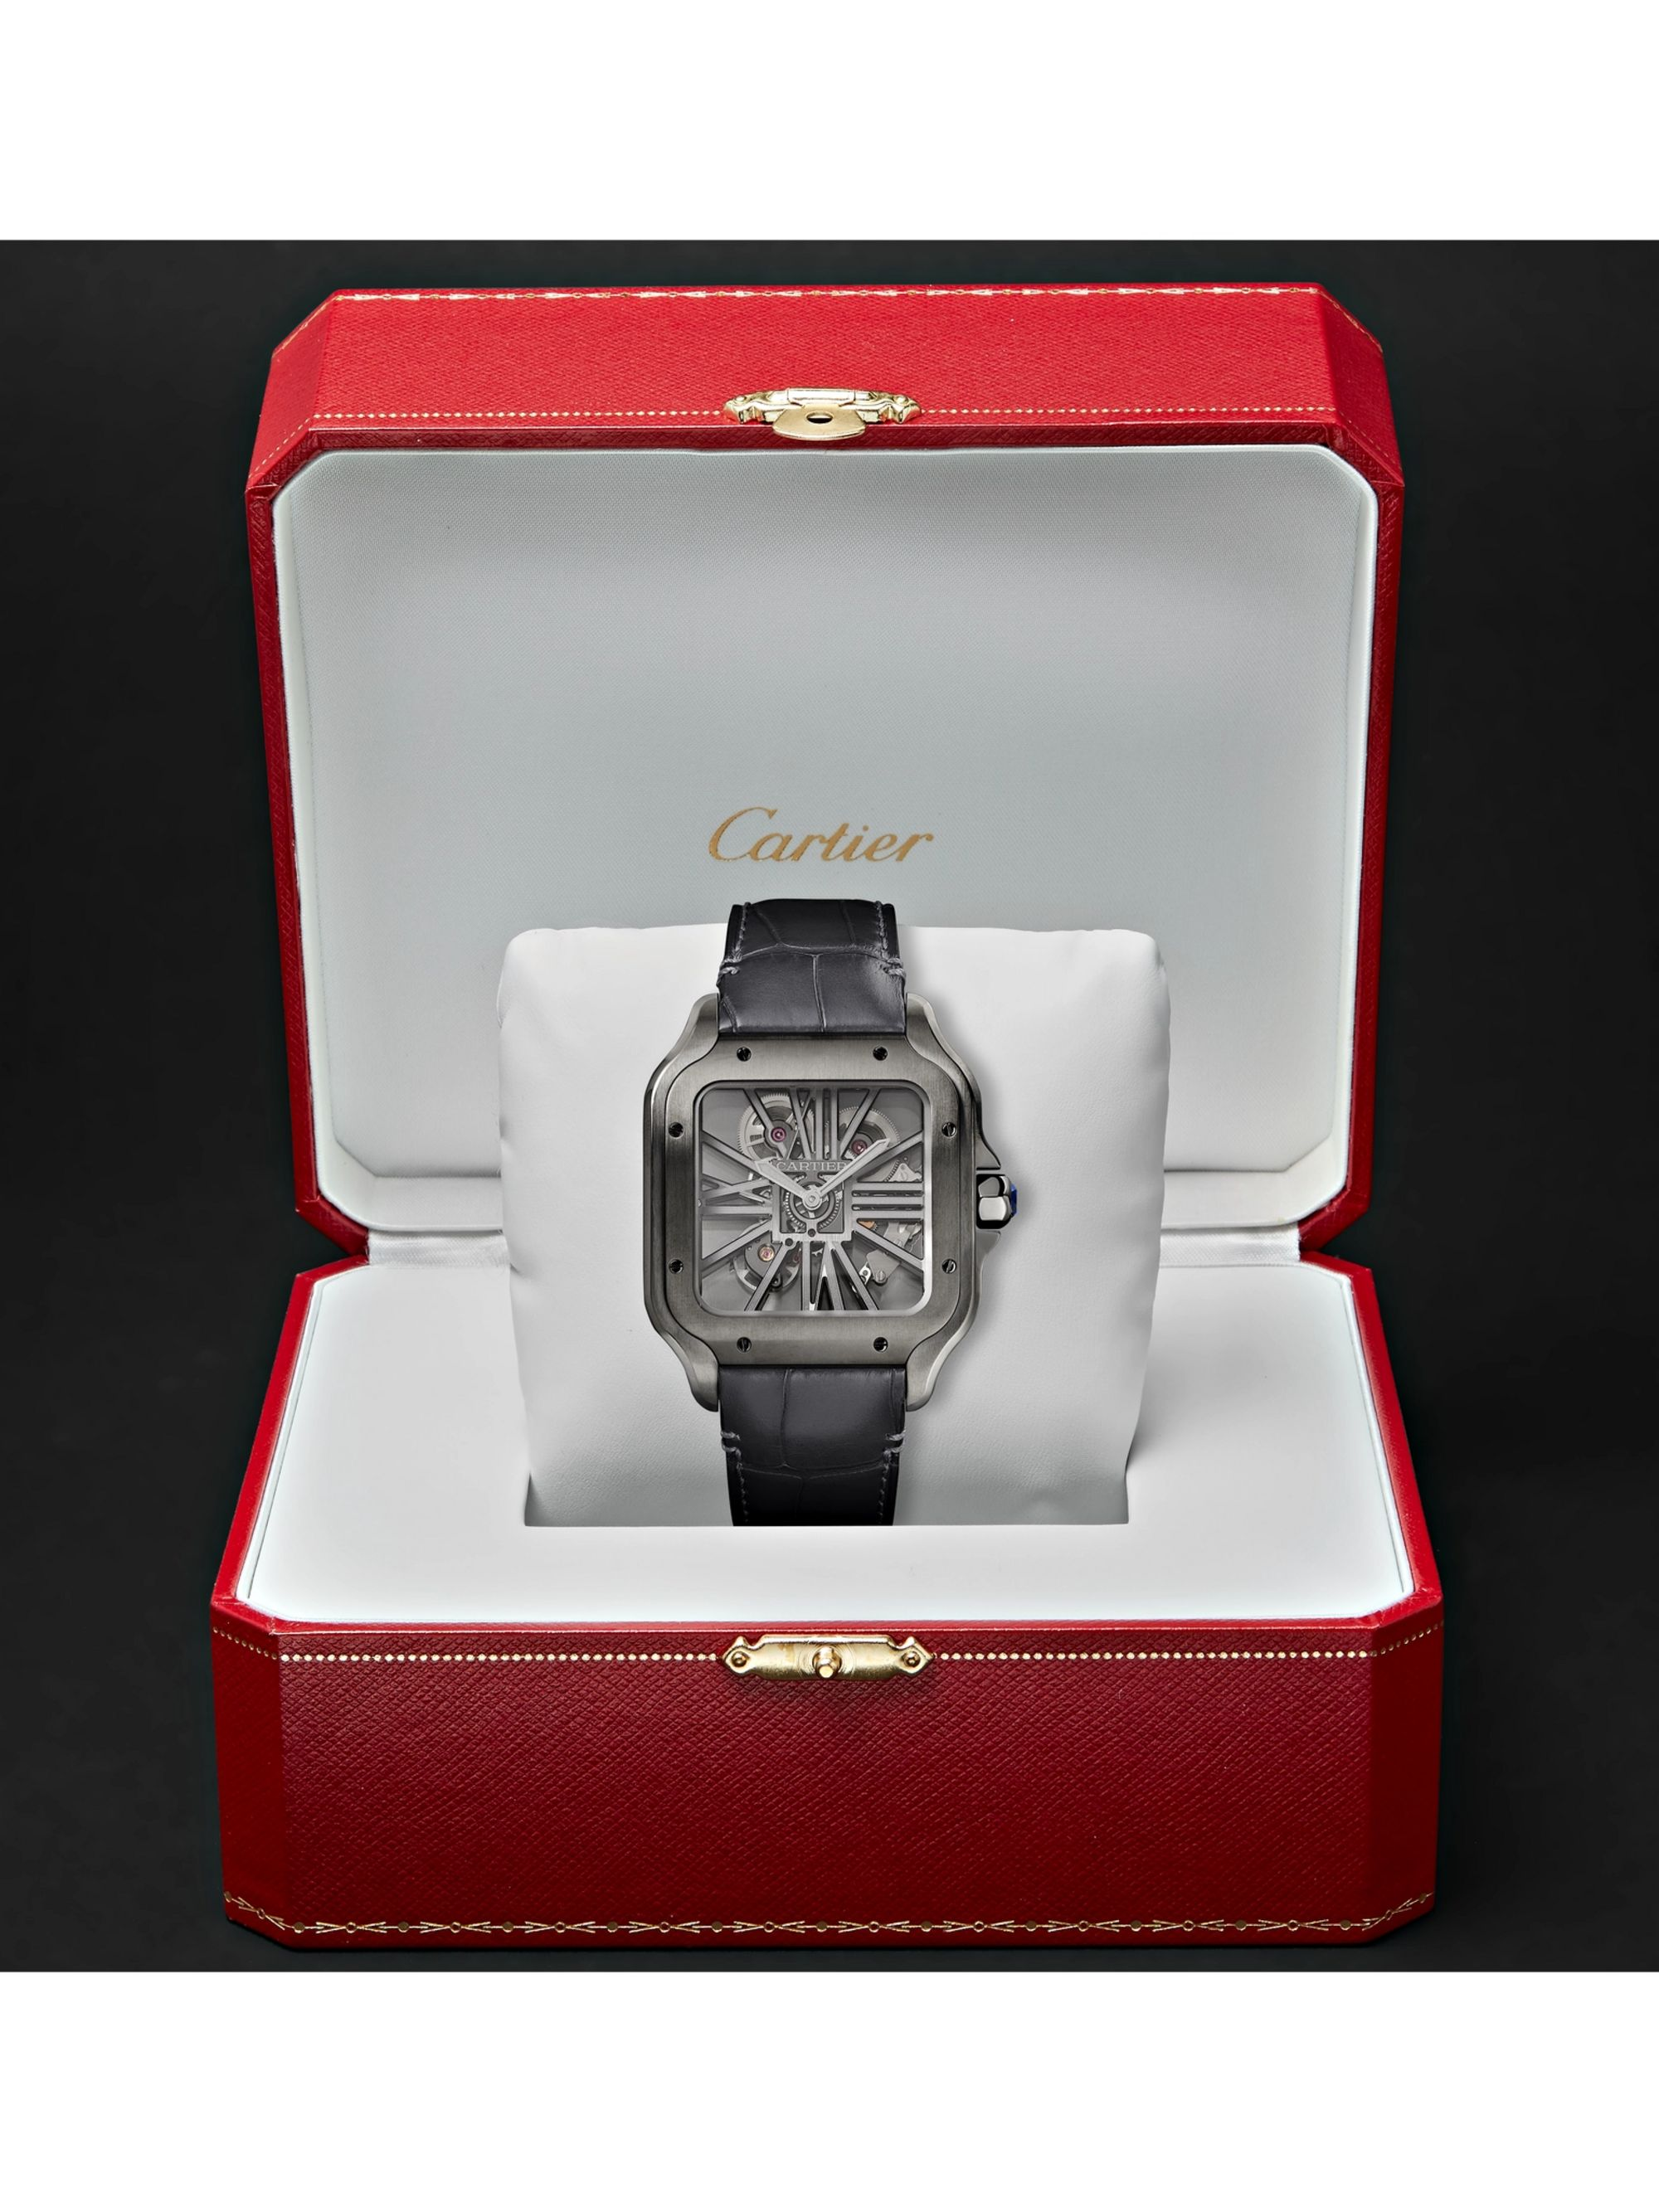 Cartier Santos de Cartier Skeleton Noctambule 39.8mm ADLC-Coated Stainless Steel and Alligator Watch